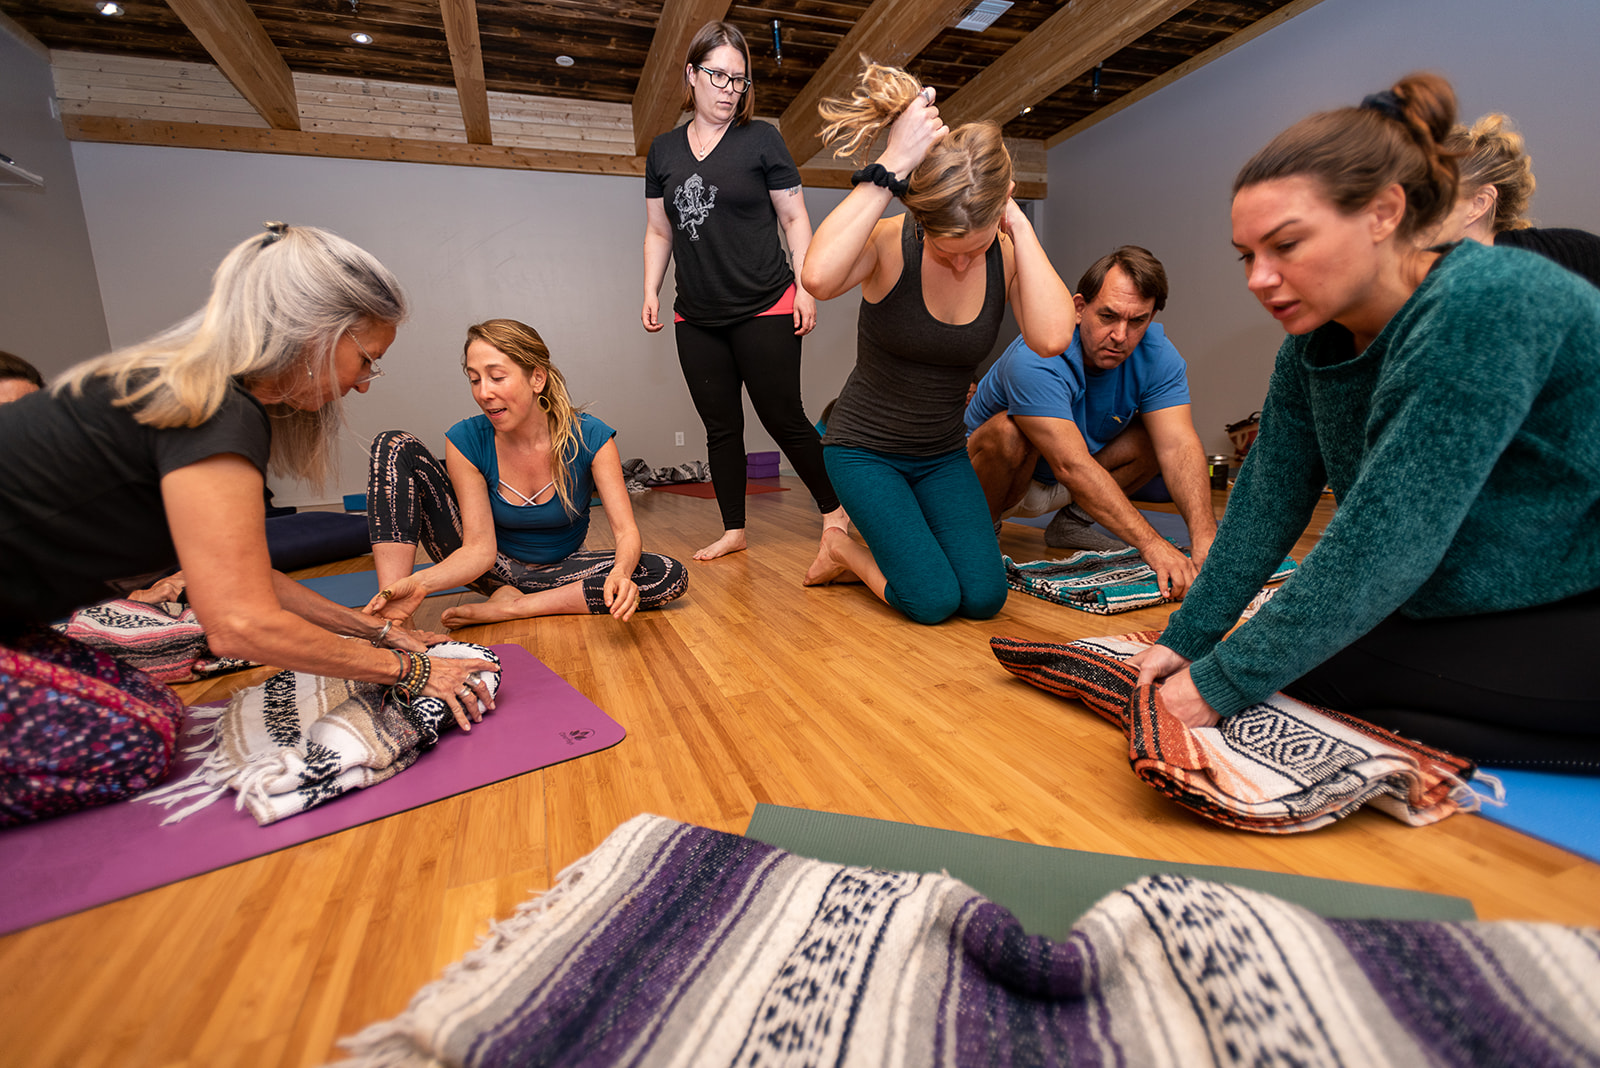 yin-yoga-teacher-training-durga-excursions-sedona-I-2019-8.jpg